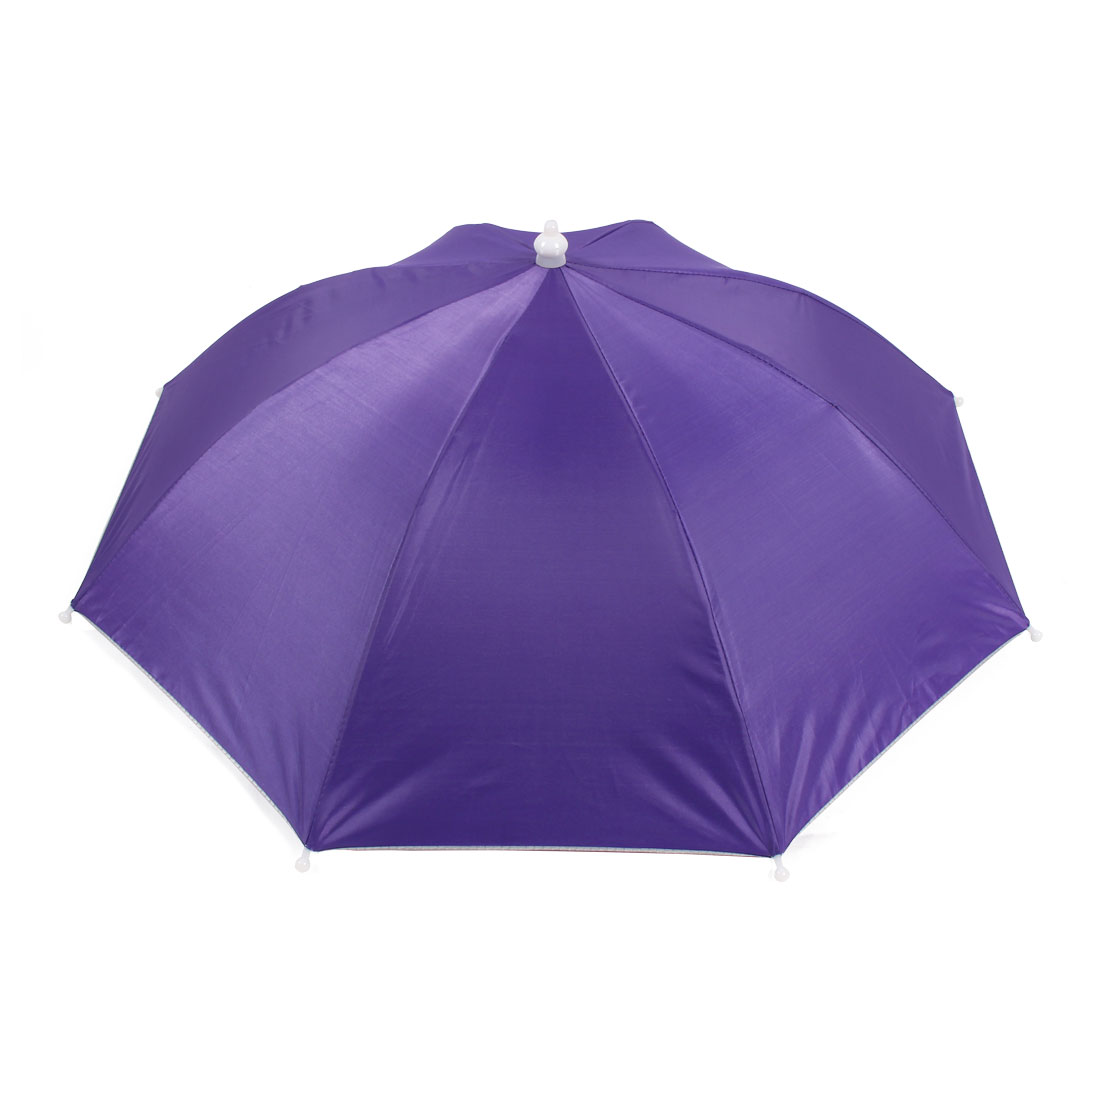 Fishing Camping Sun Shade Polyester Umbrella Hat Purple